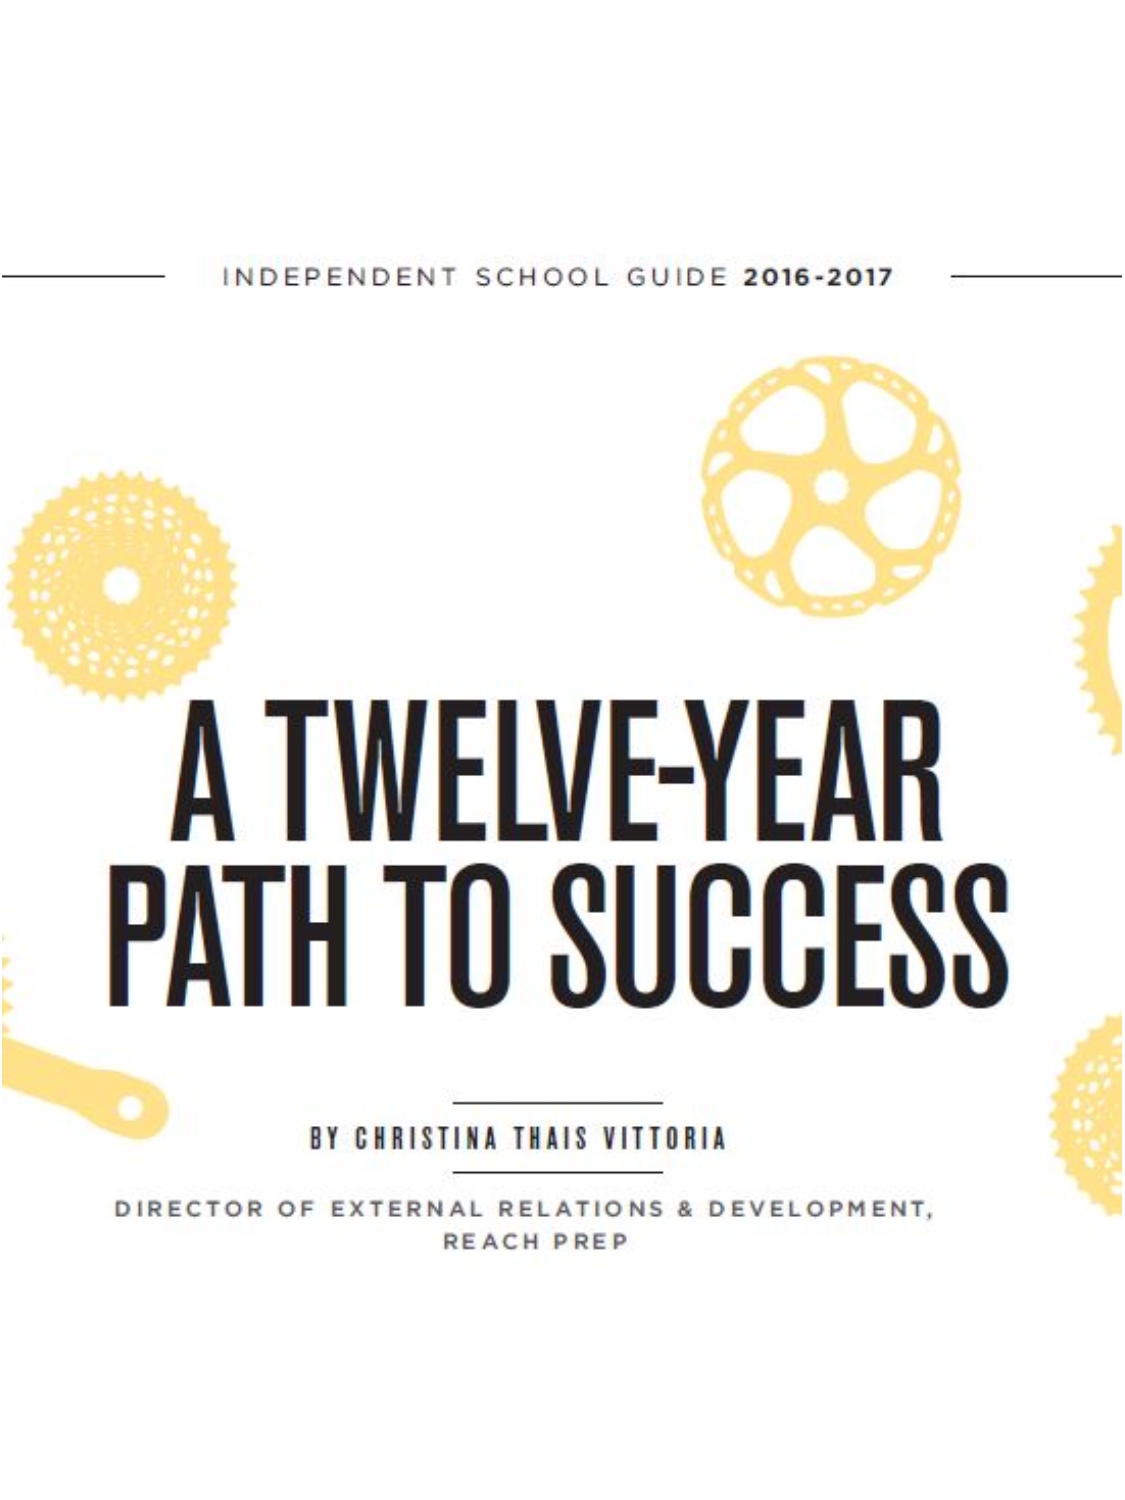 Independent School Guide 2016-2017